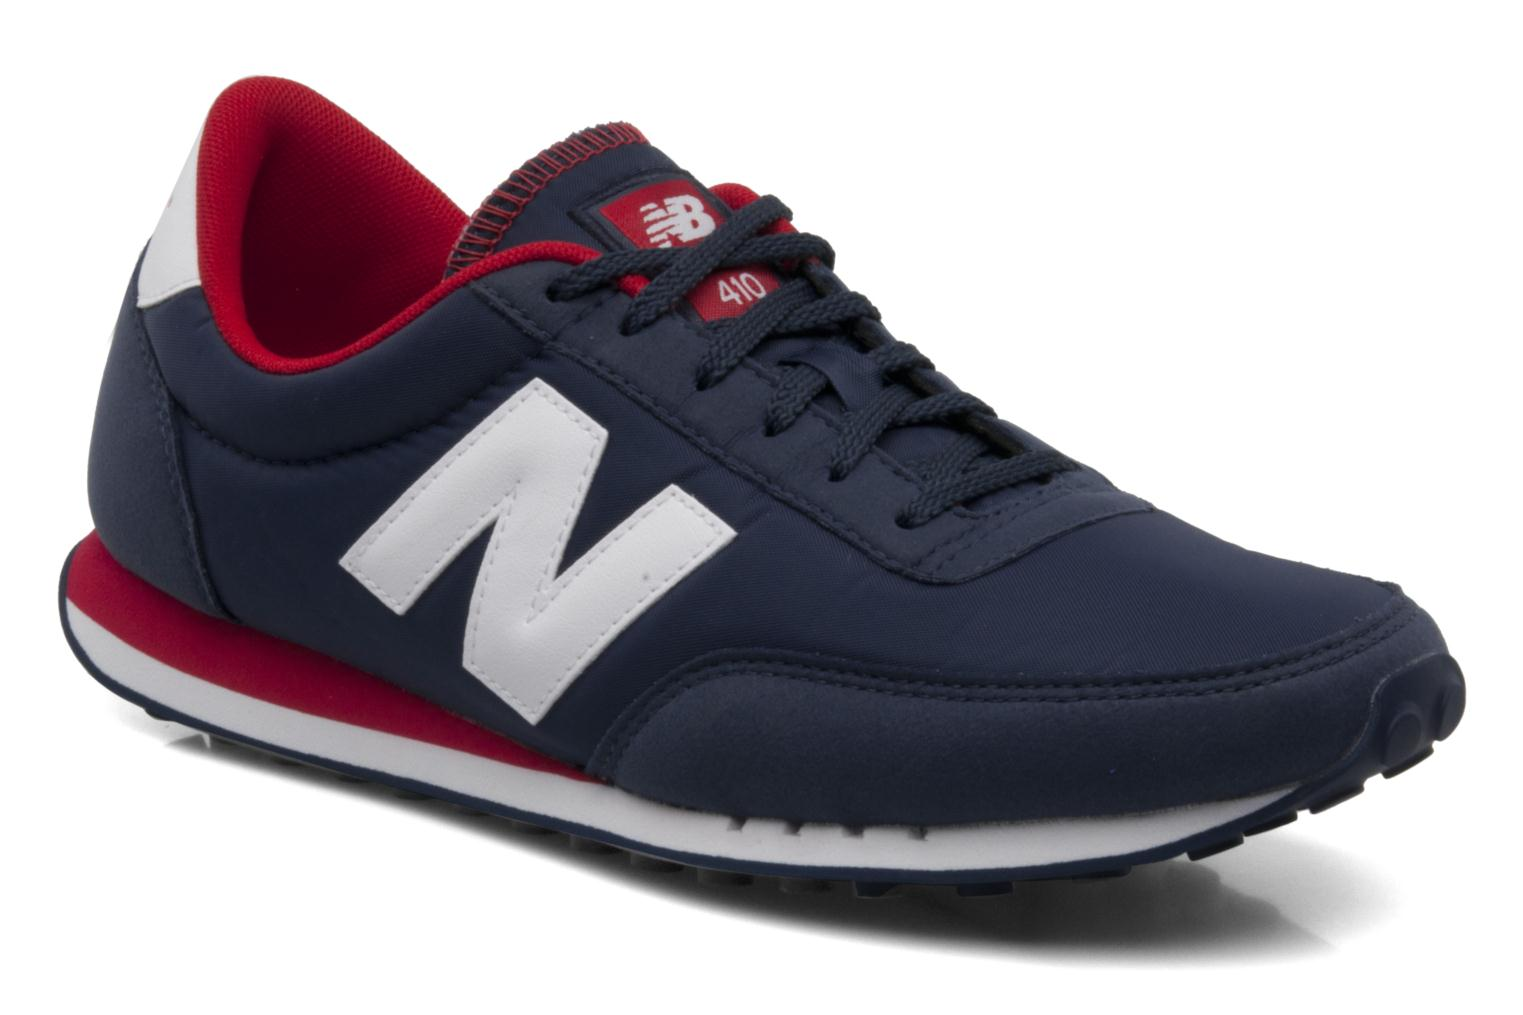 new balance u410 trainers in blue at 86119. Black Bedroom Furniture Sets. Home Design Ideas